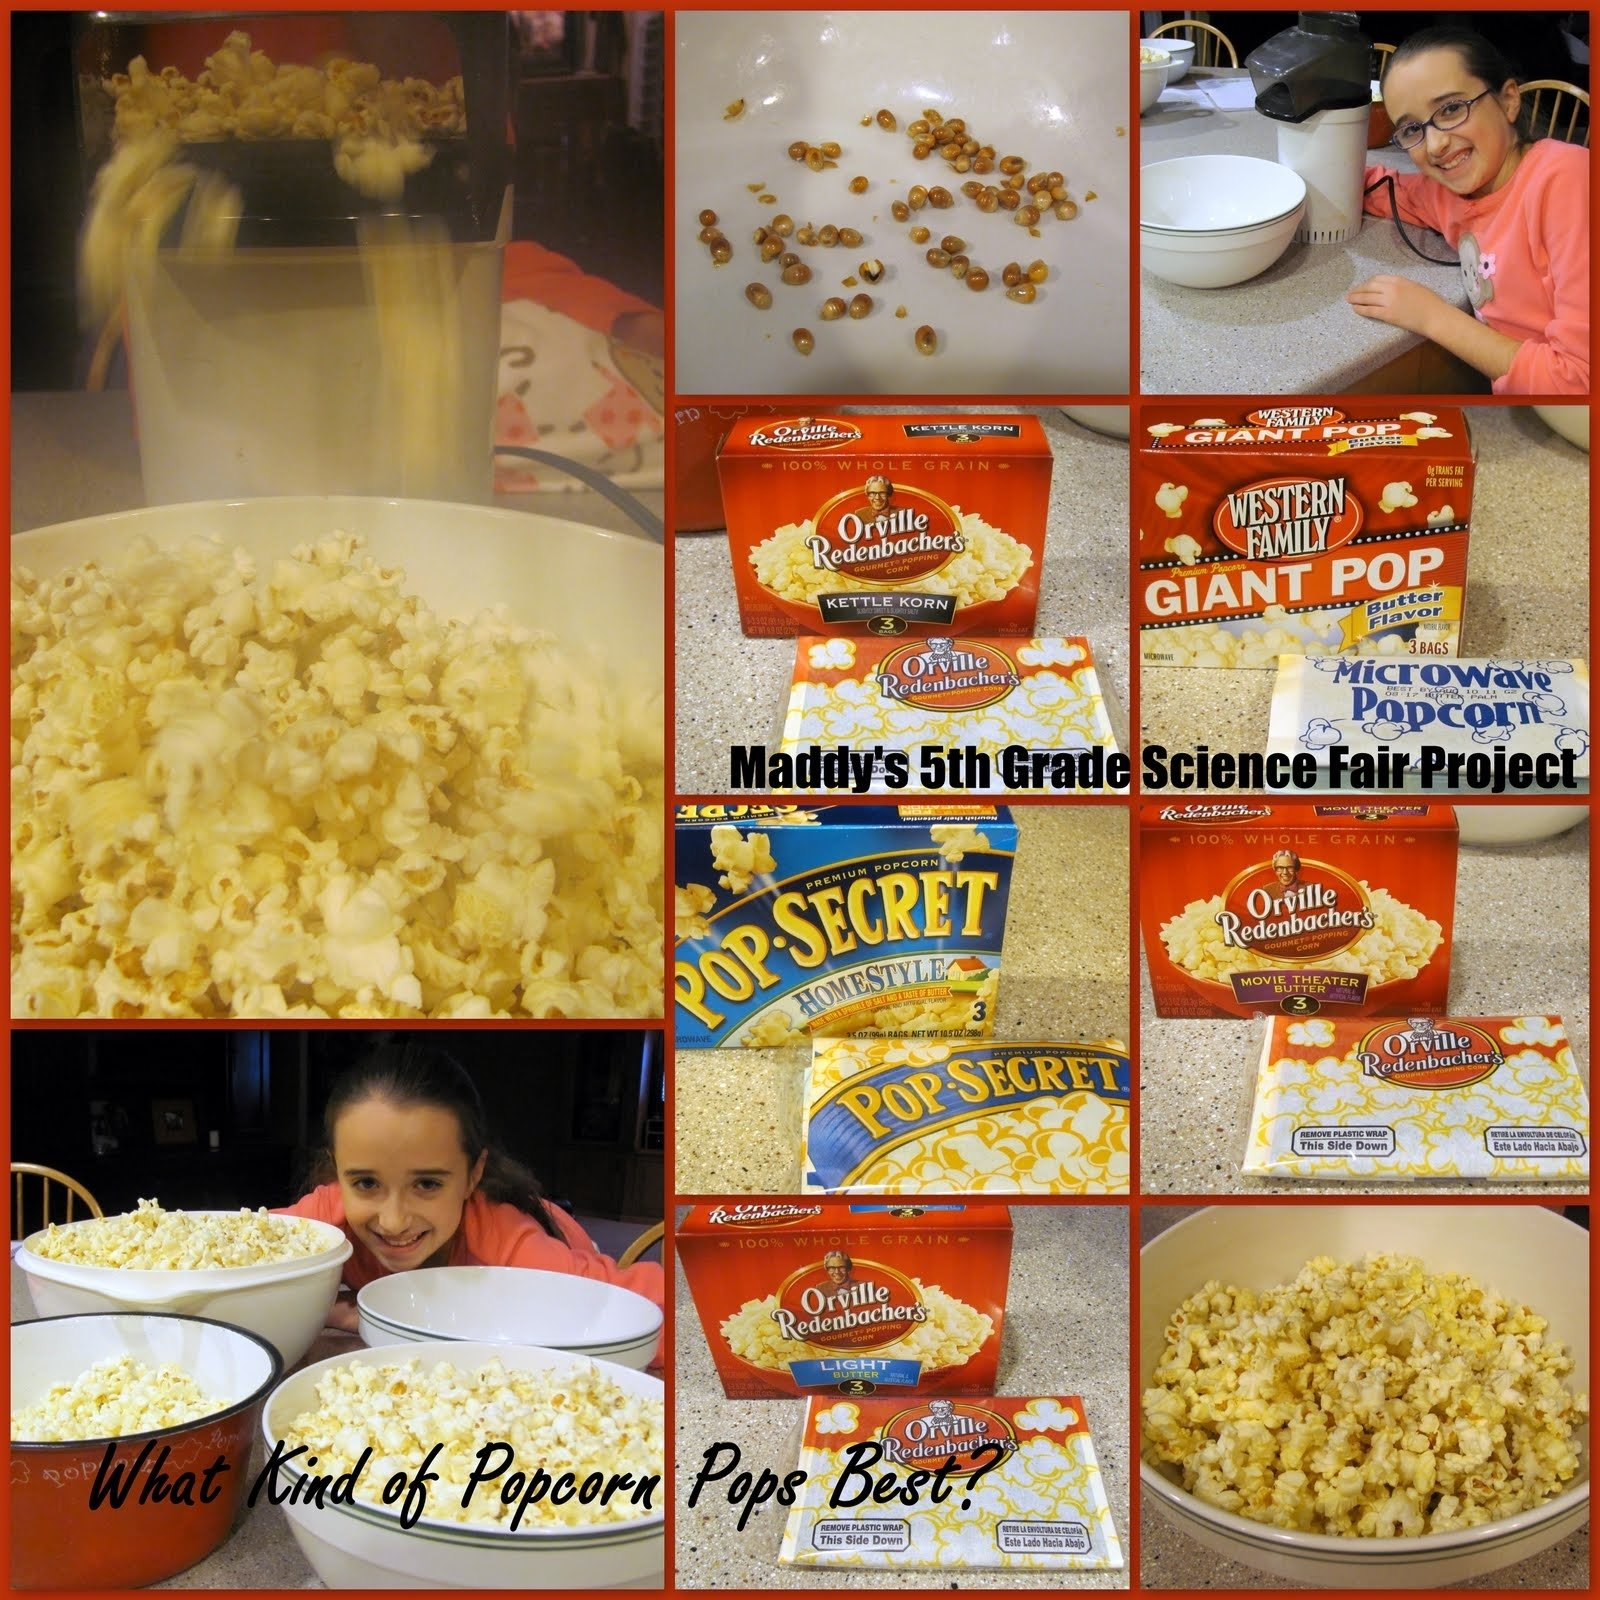 10 Attractive Science Fair Project Ideas With Food 5th grade science projects popcorn on top of that maddy had put